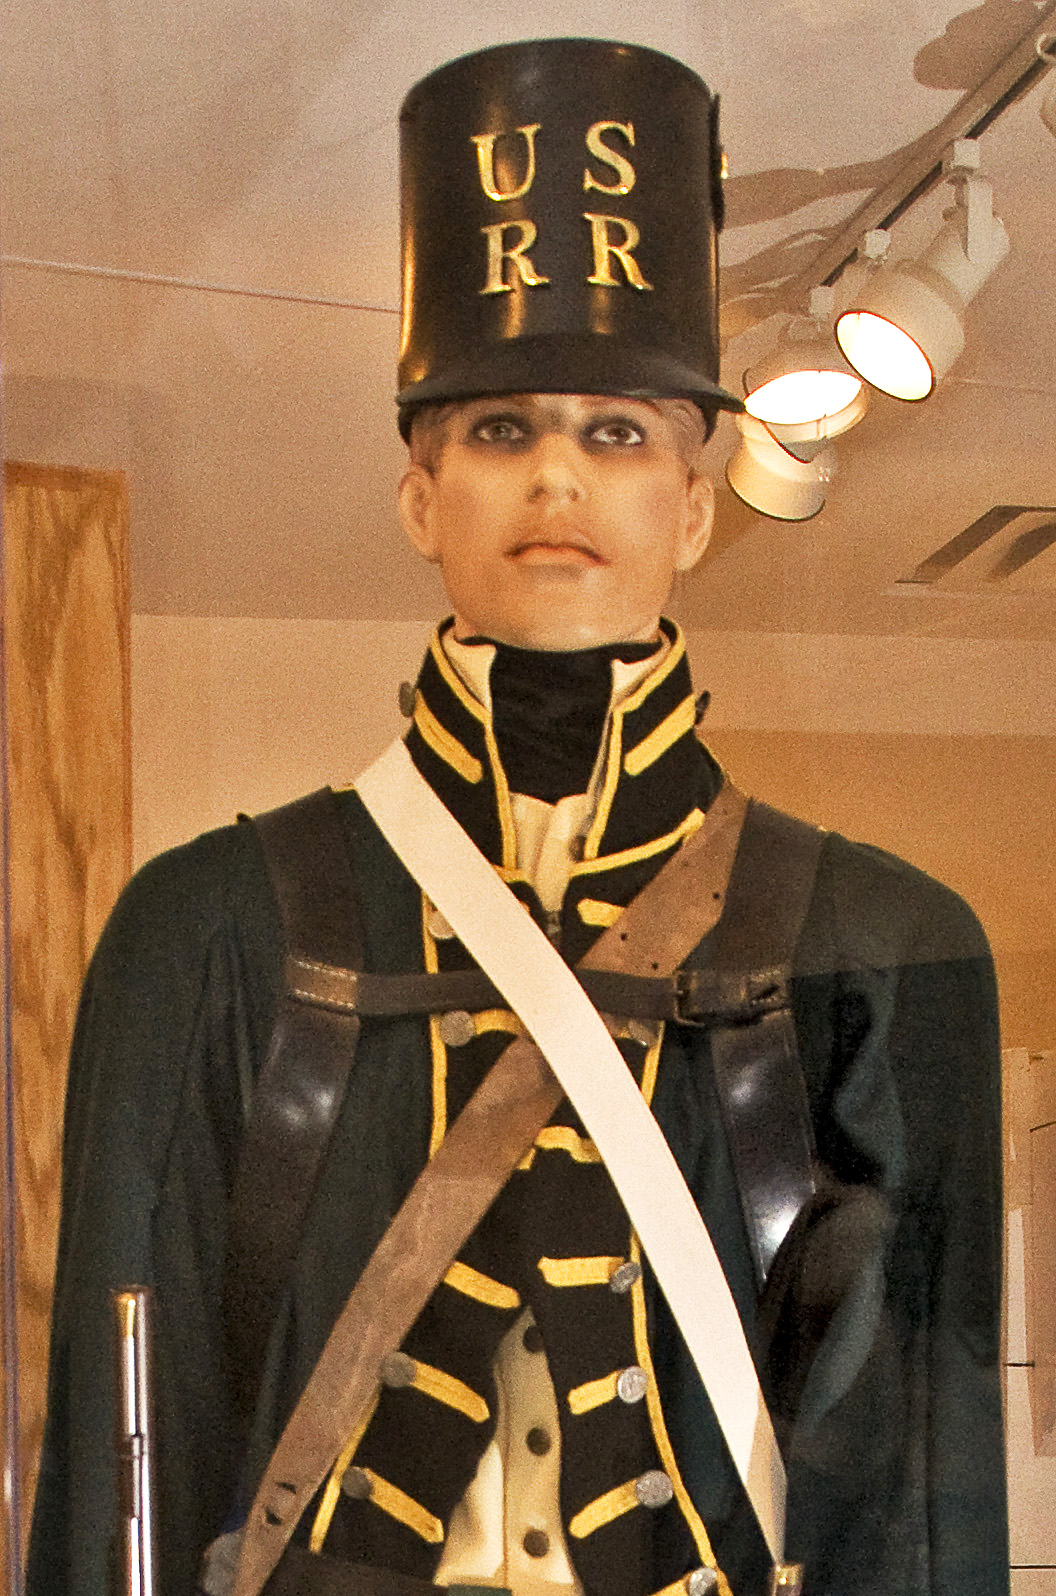 A United States of America soldier in a uniform that was worn in the War of 1812.